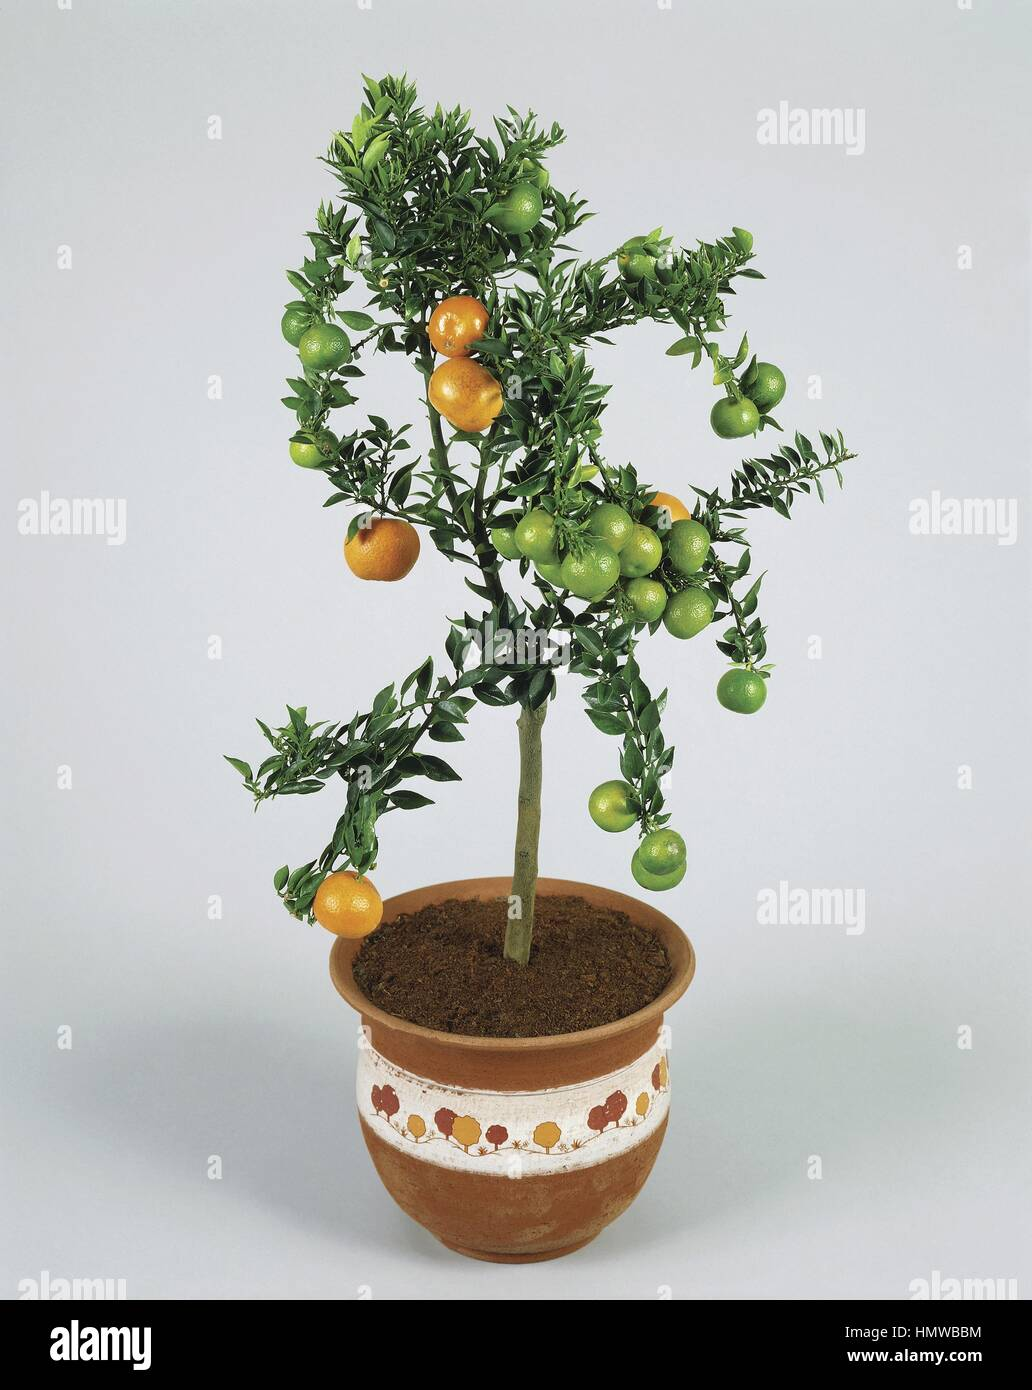 Plante D'interieur Orange Plantes D Intérieur Rutaceae Myrtleleaf Ou Orange Citrus